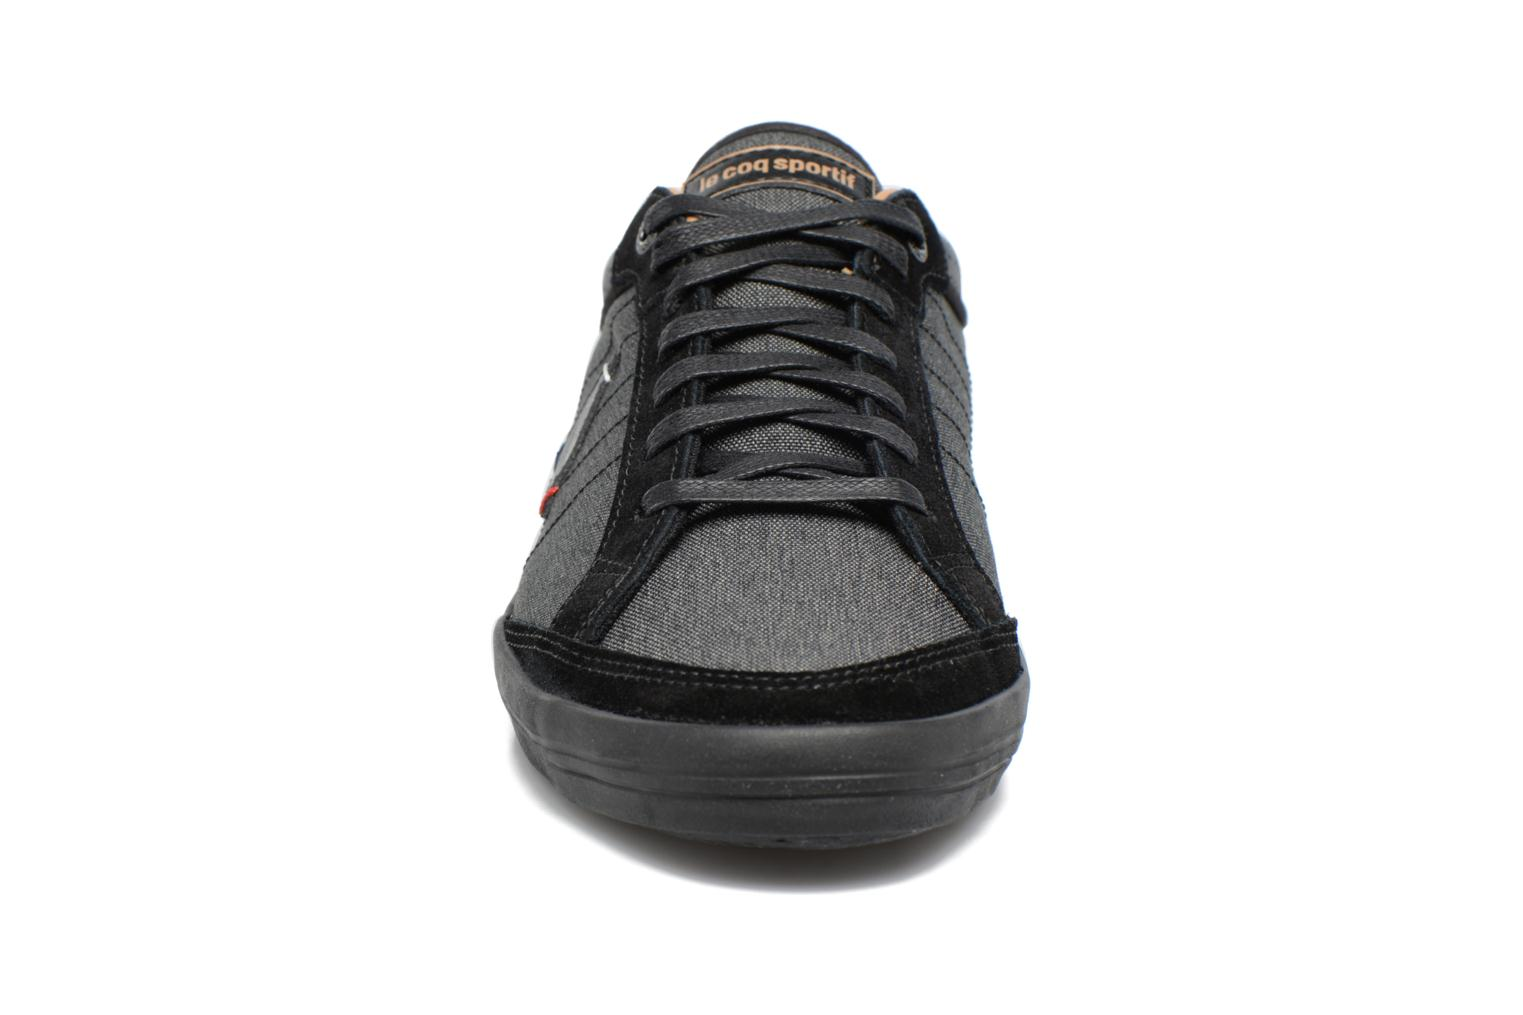 Feretcraft Black/tan